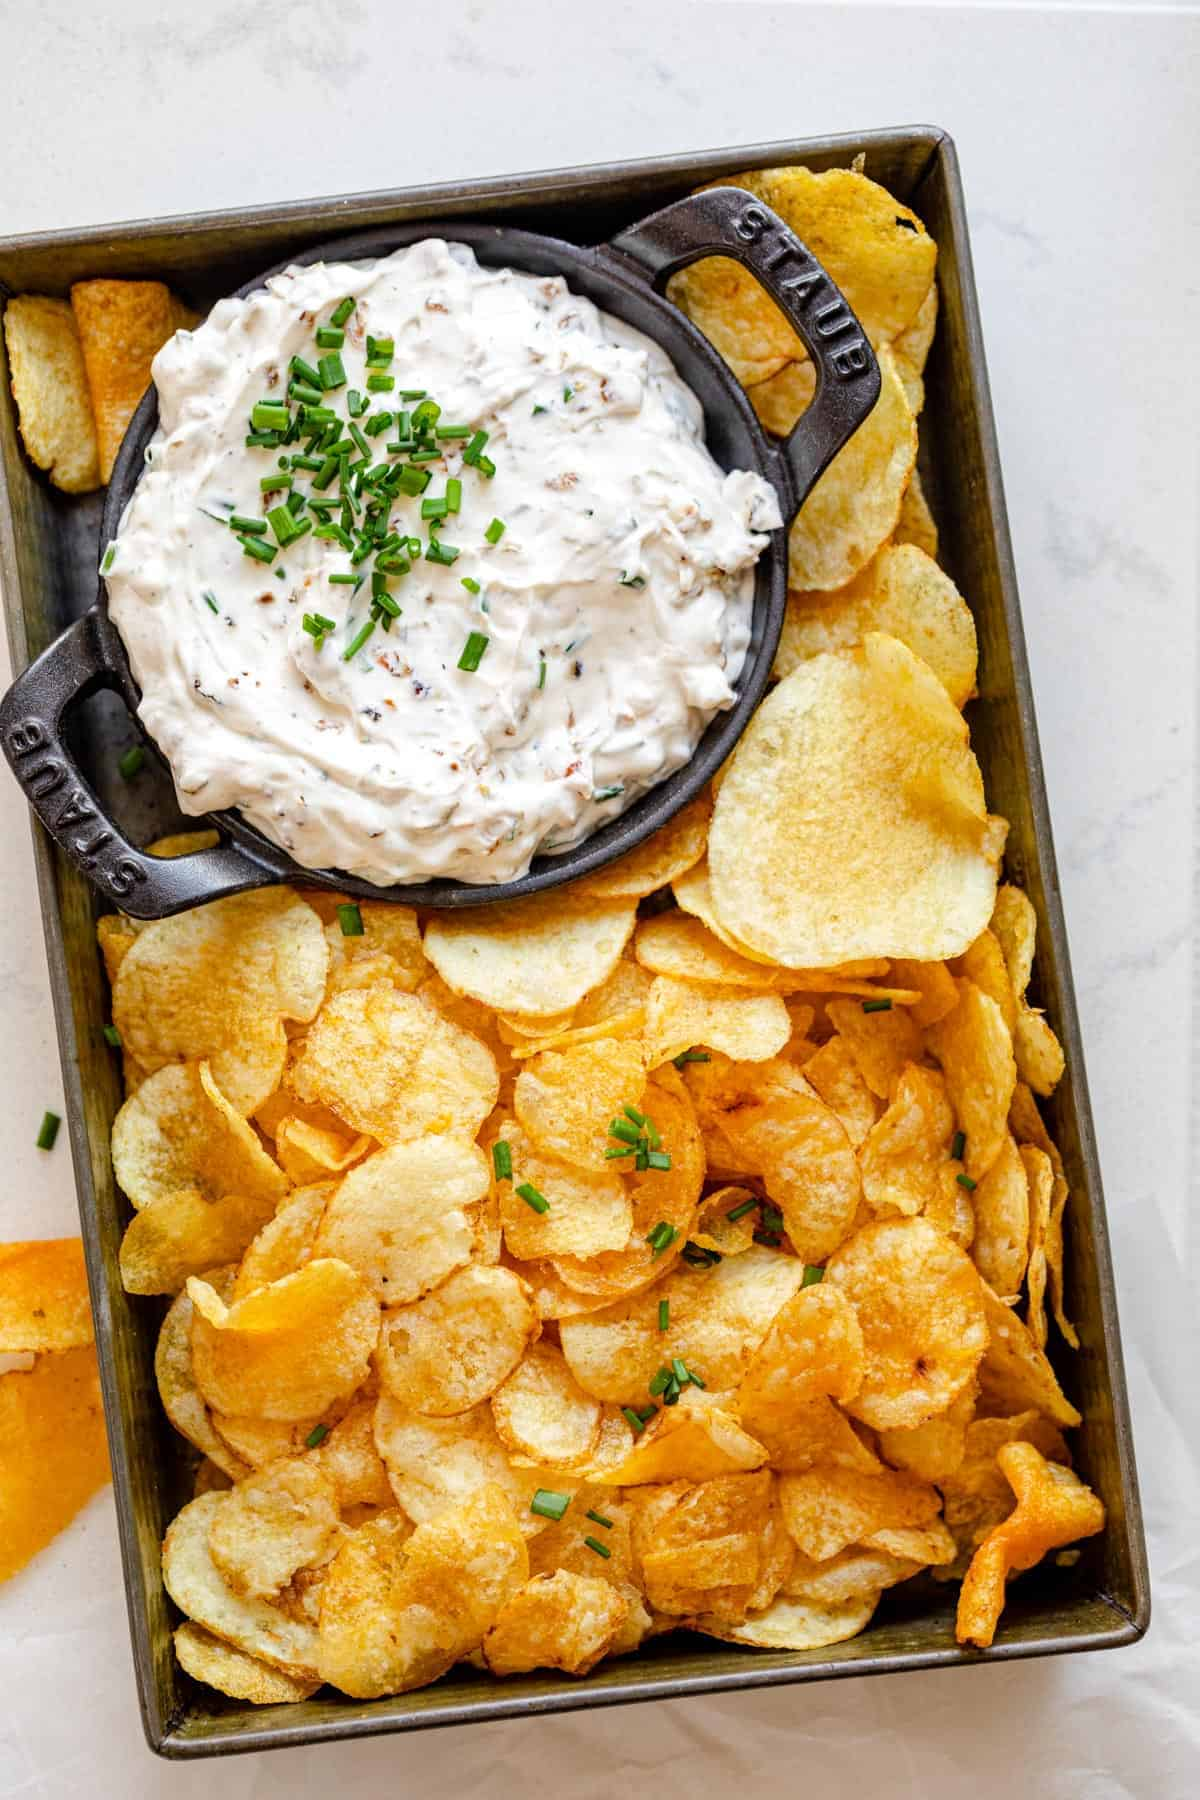 Skinny French Onion Dip in a white bowl with sliced vegetables